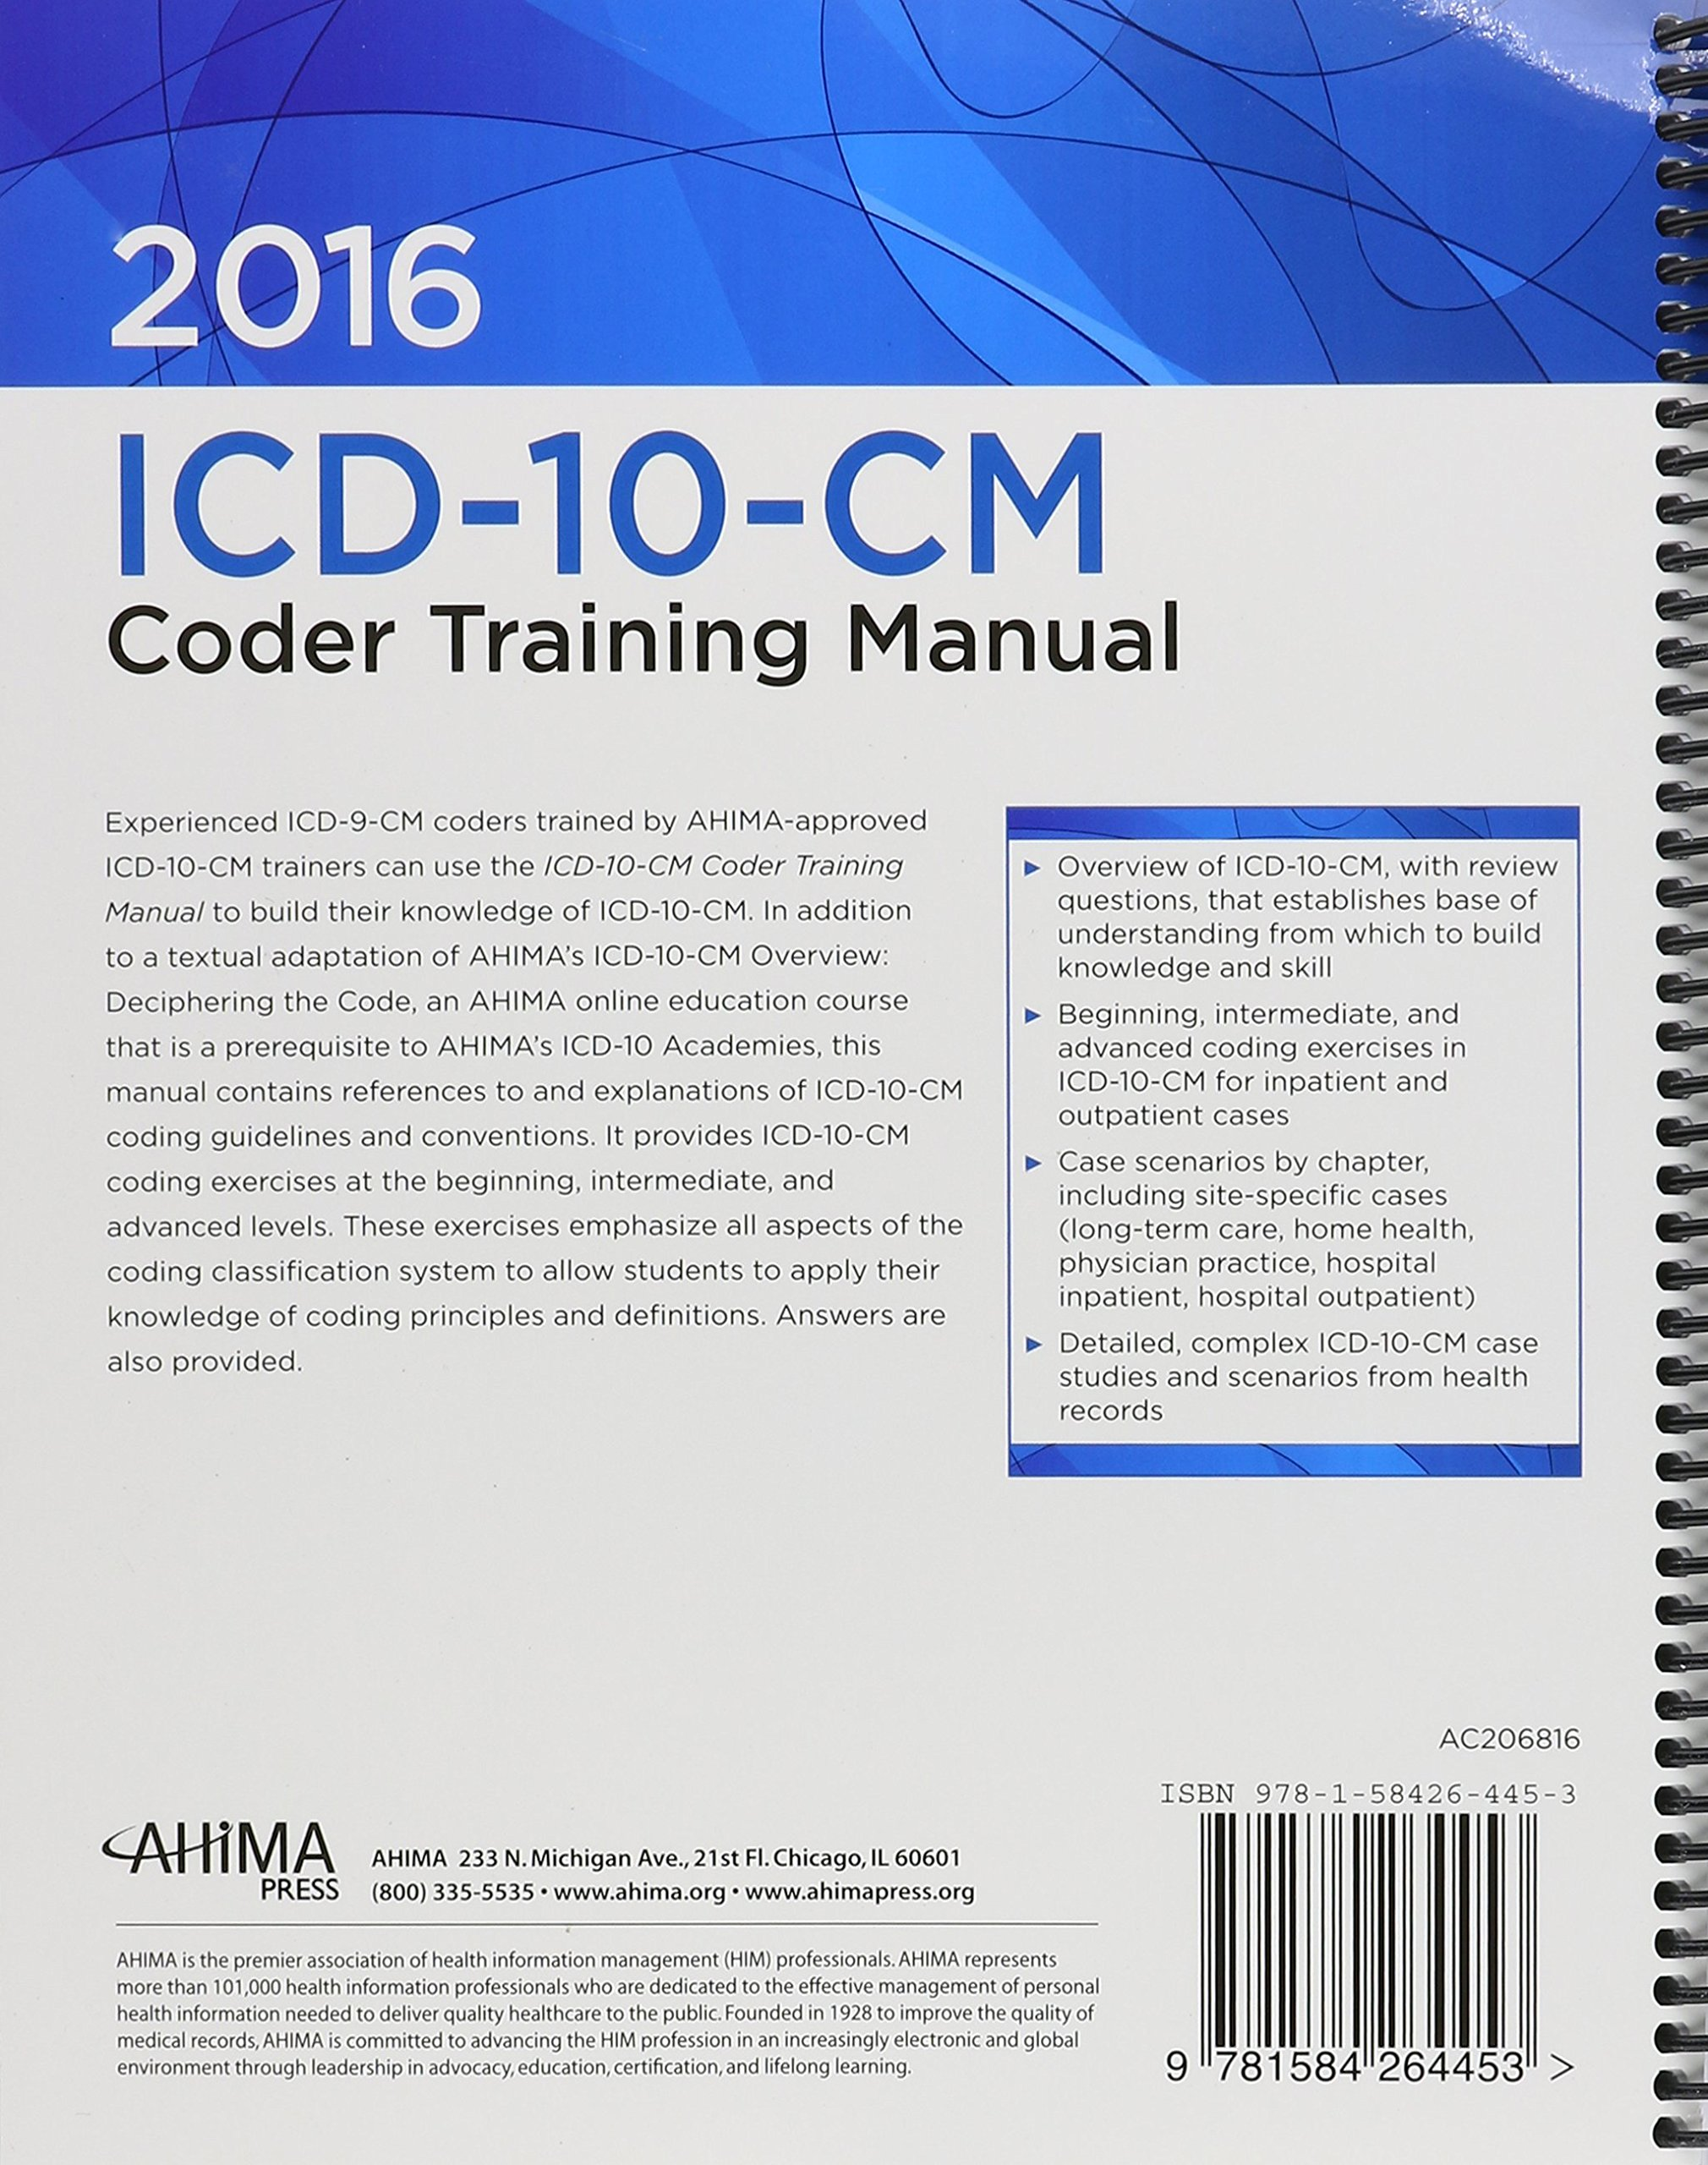 Amazon Buy Icd 10 Cm Coder Training Manual 2016 Edition Book